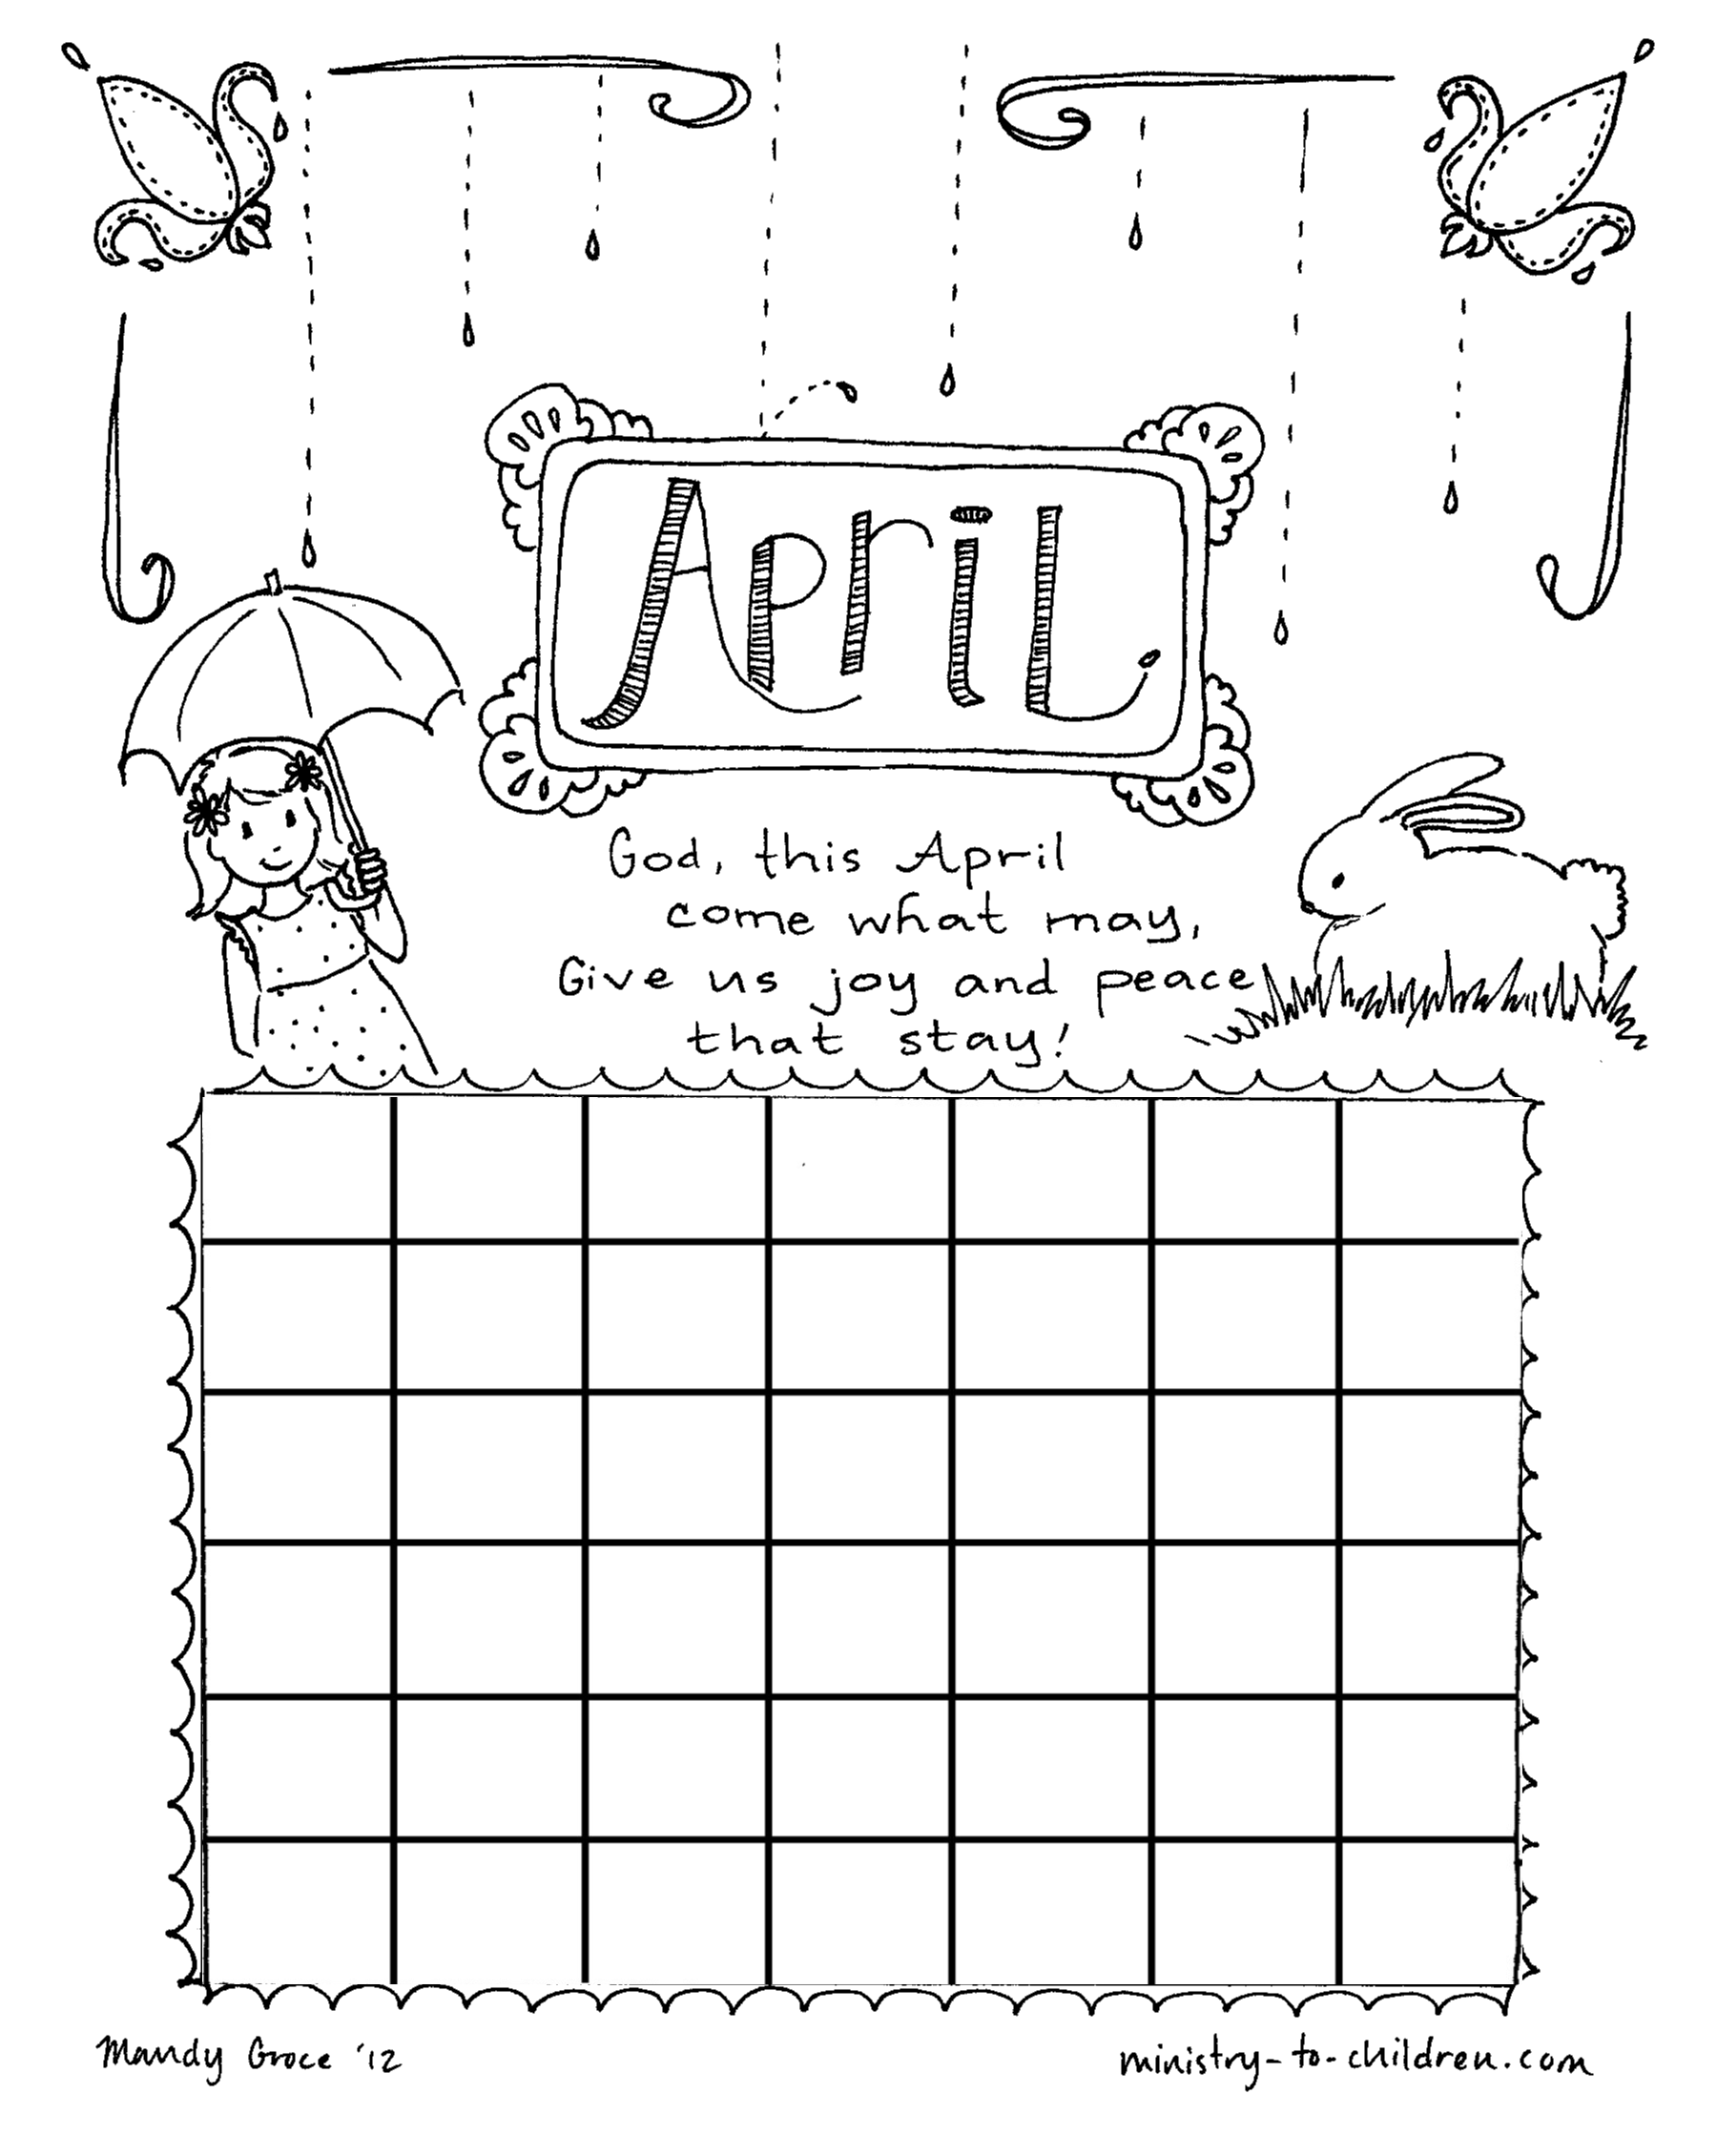 April coloring pages to download